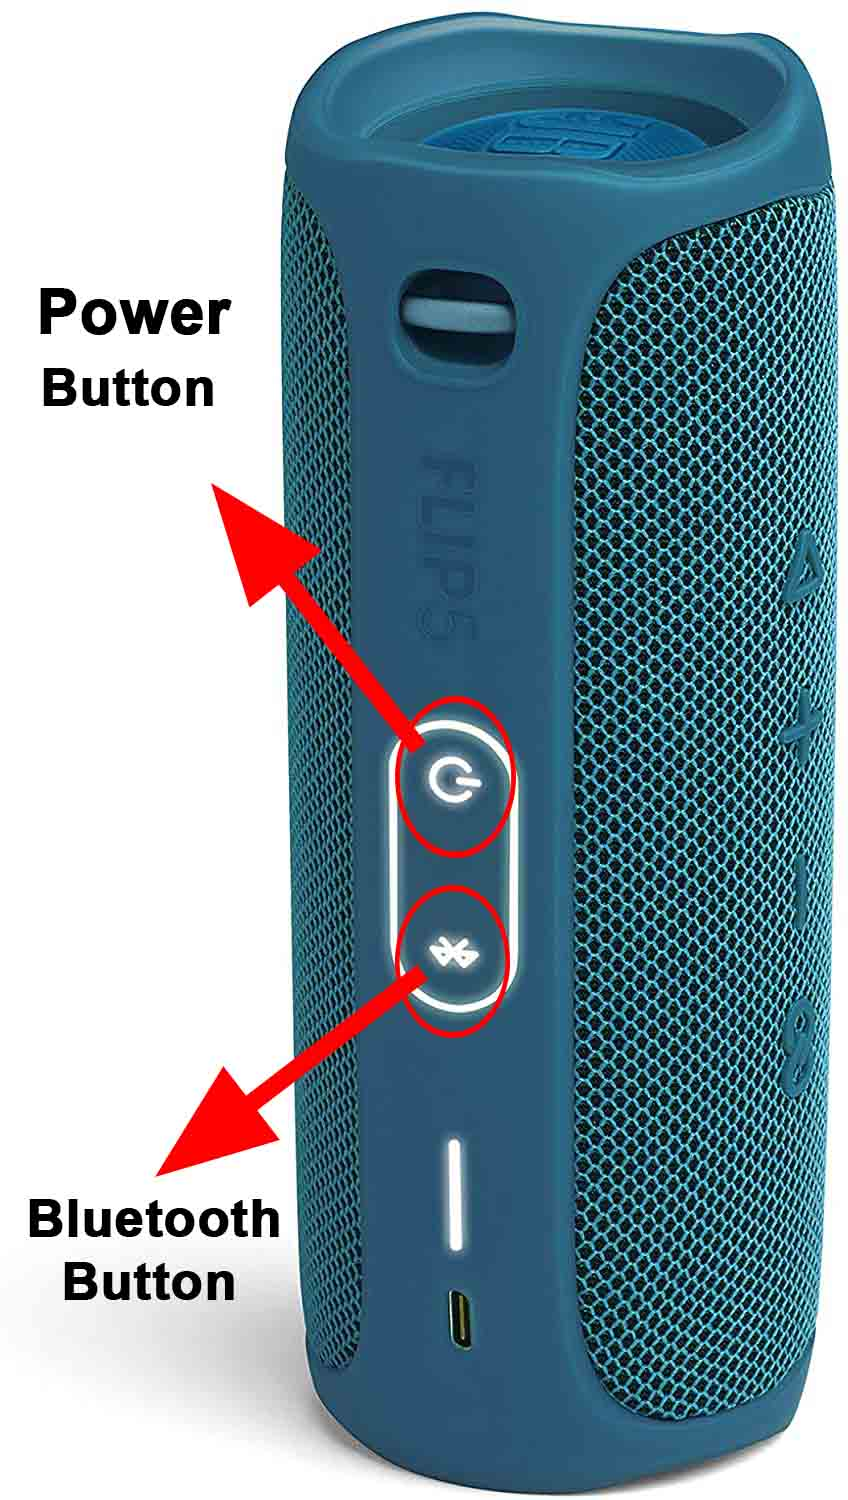 Power and Bluetooth Buttons on JBL Speakers